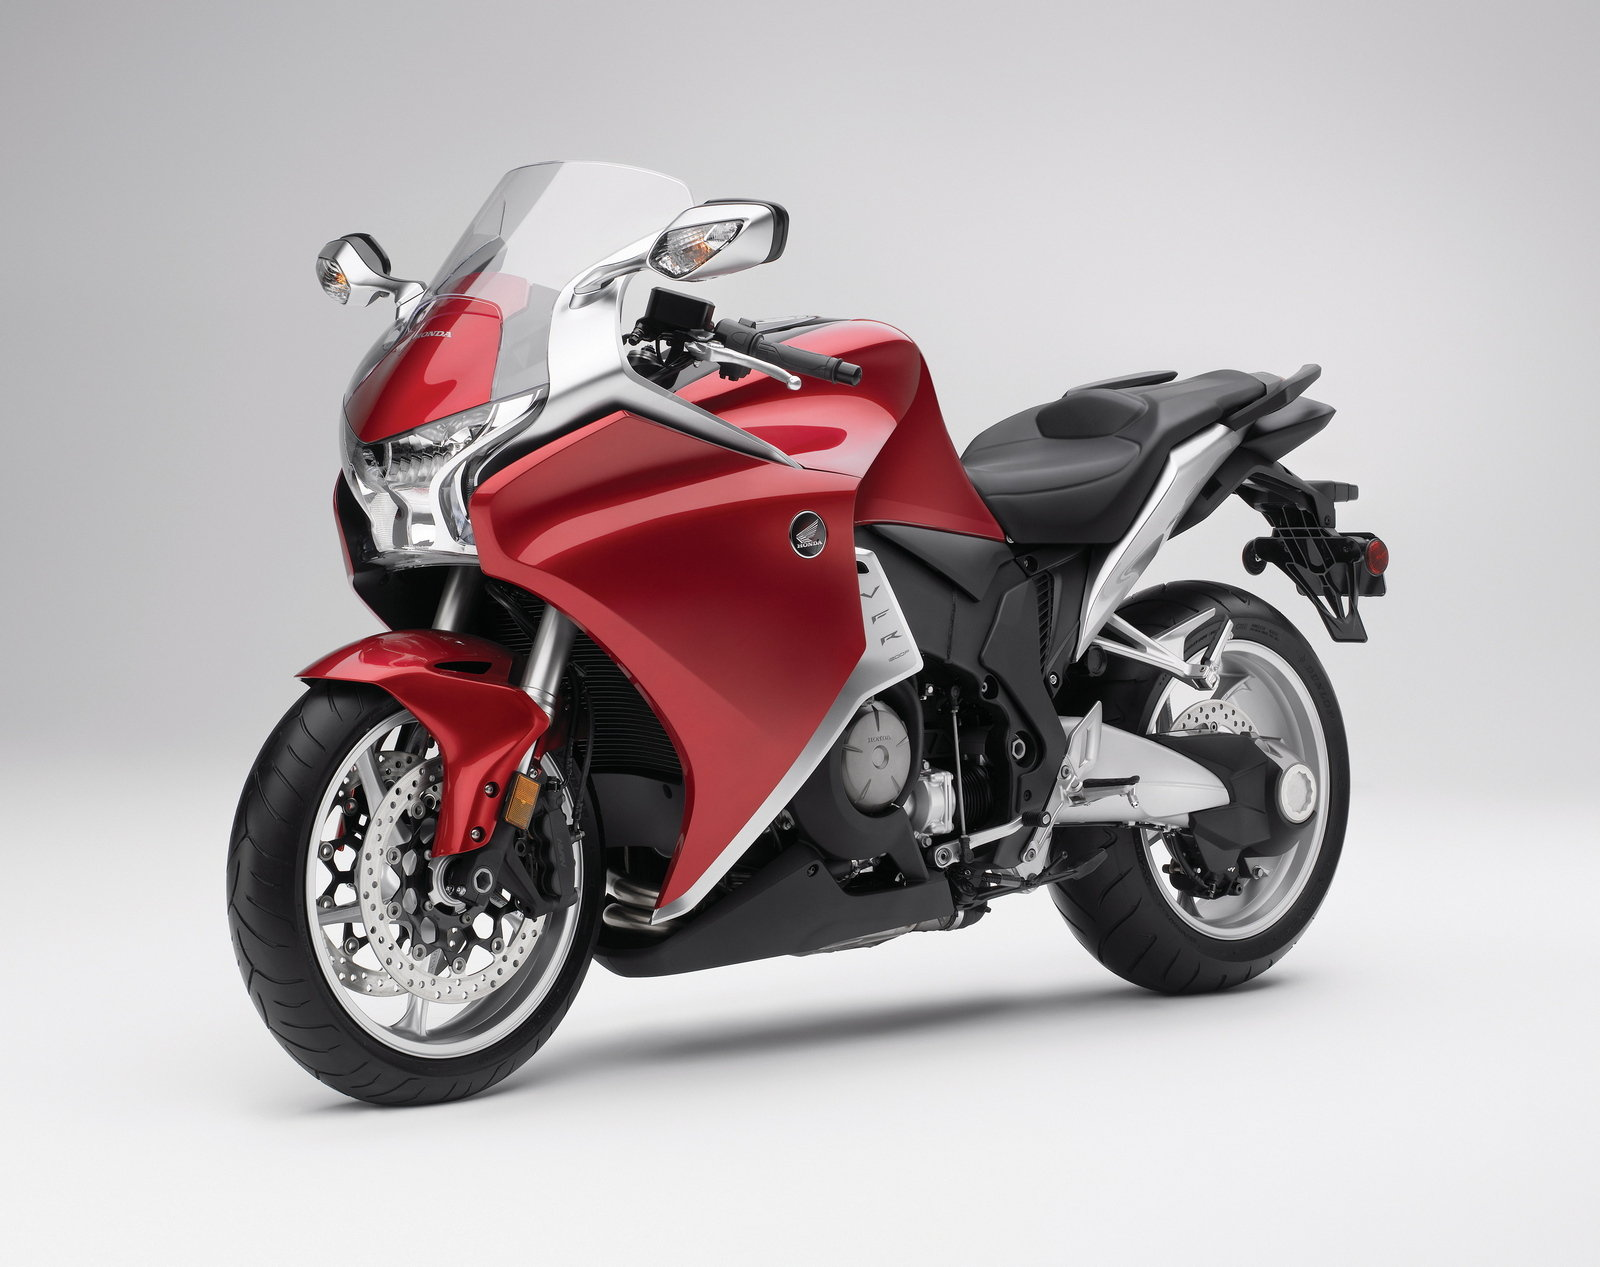 honda motorcycles honda vfr1200f fast and furious pics. Black Bedroom Furniture Sets. Home Design Ideas